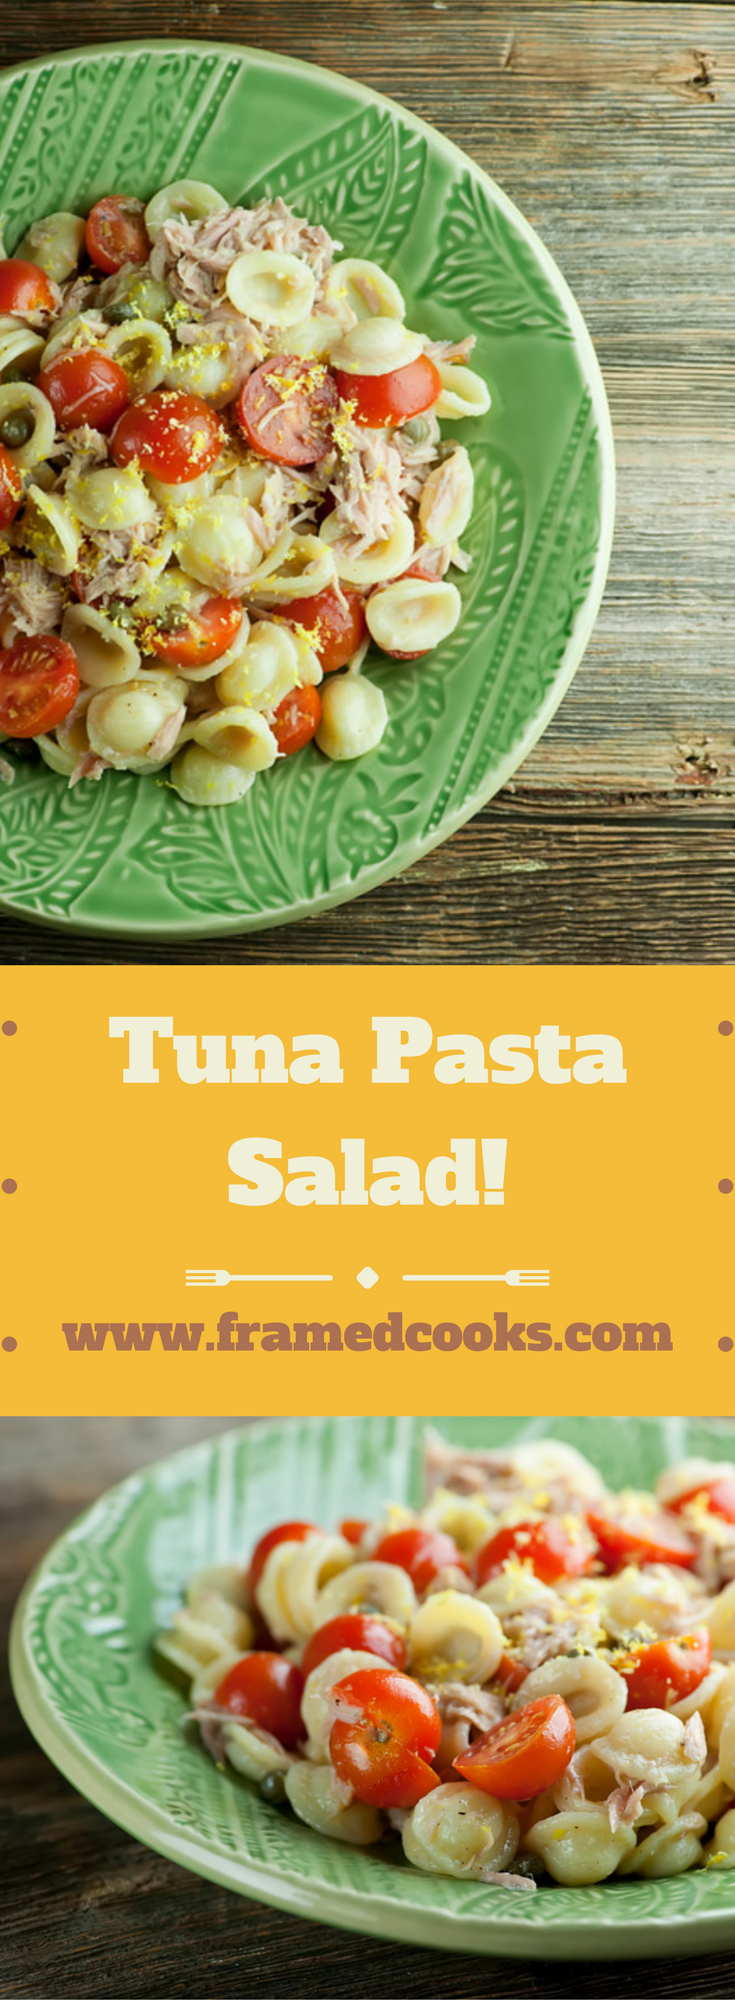 Tuna pasta salad is quick and good and good for you, packed with tuna and tomatoes and tossed with other good things! The perfect summer supper.